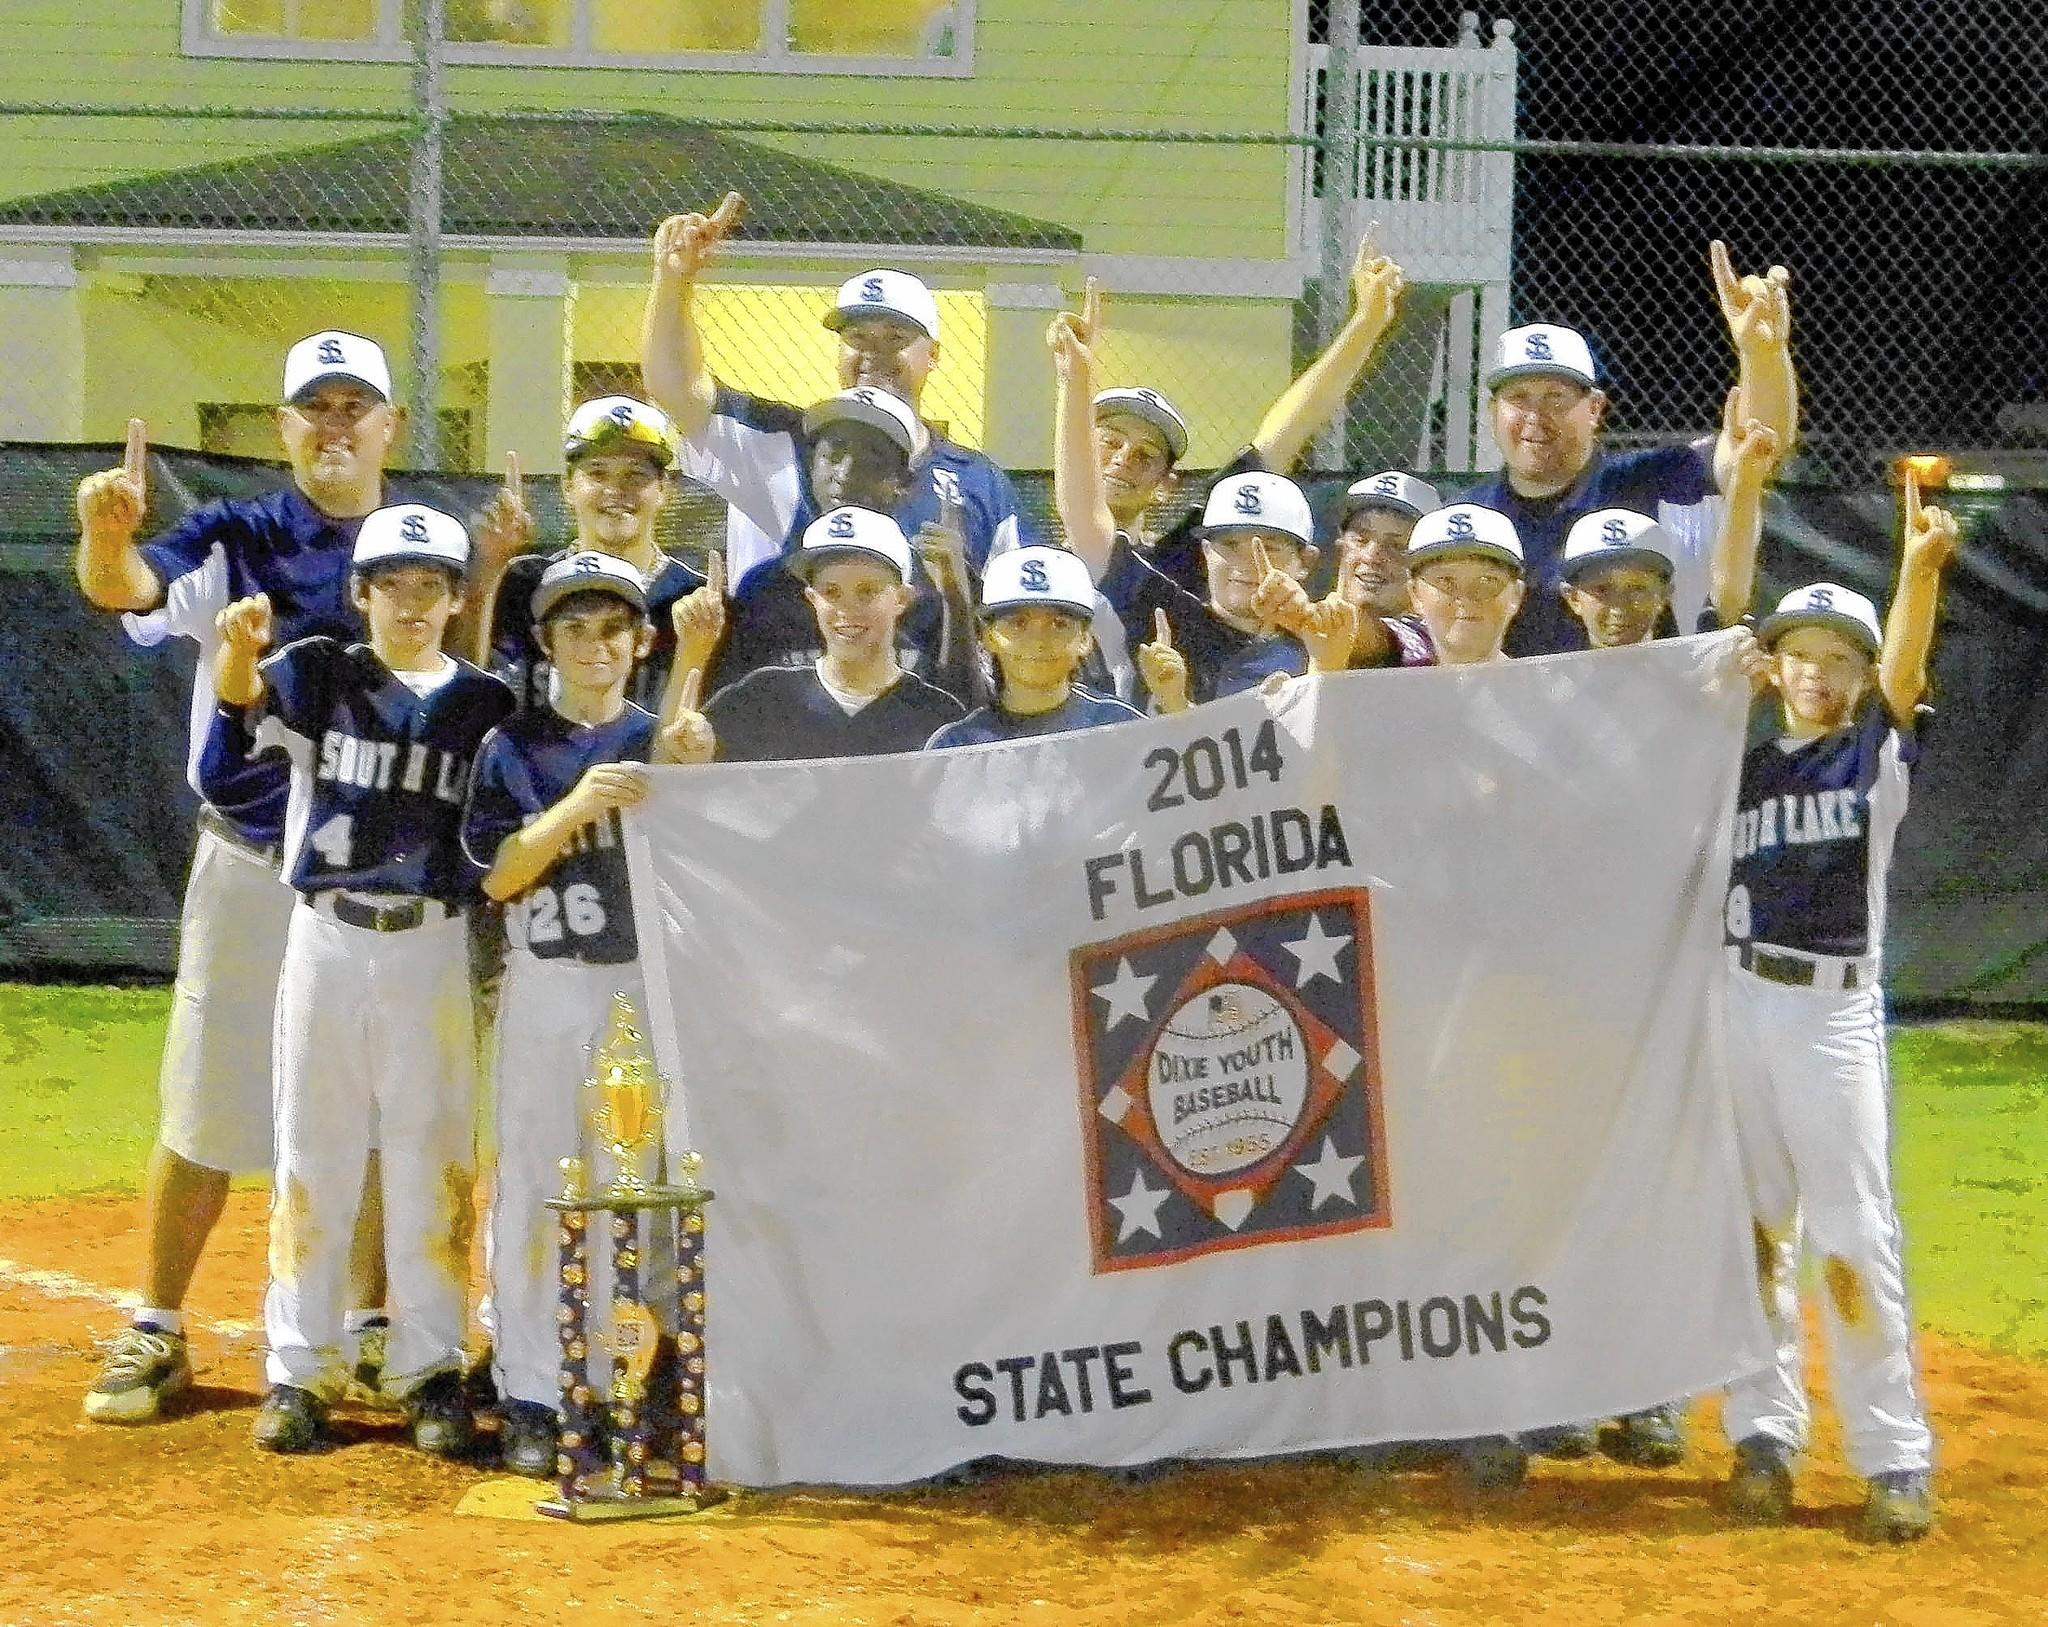 A South Lake team swept the Florida competition and is playing in the Dixie Youth World Series.